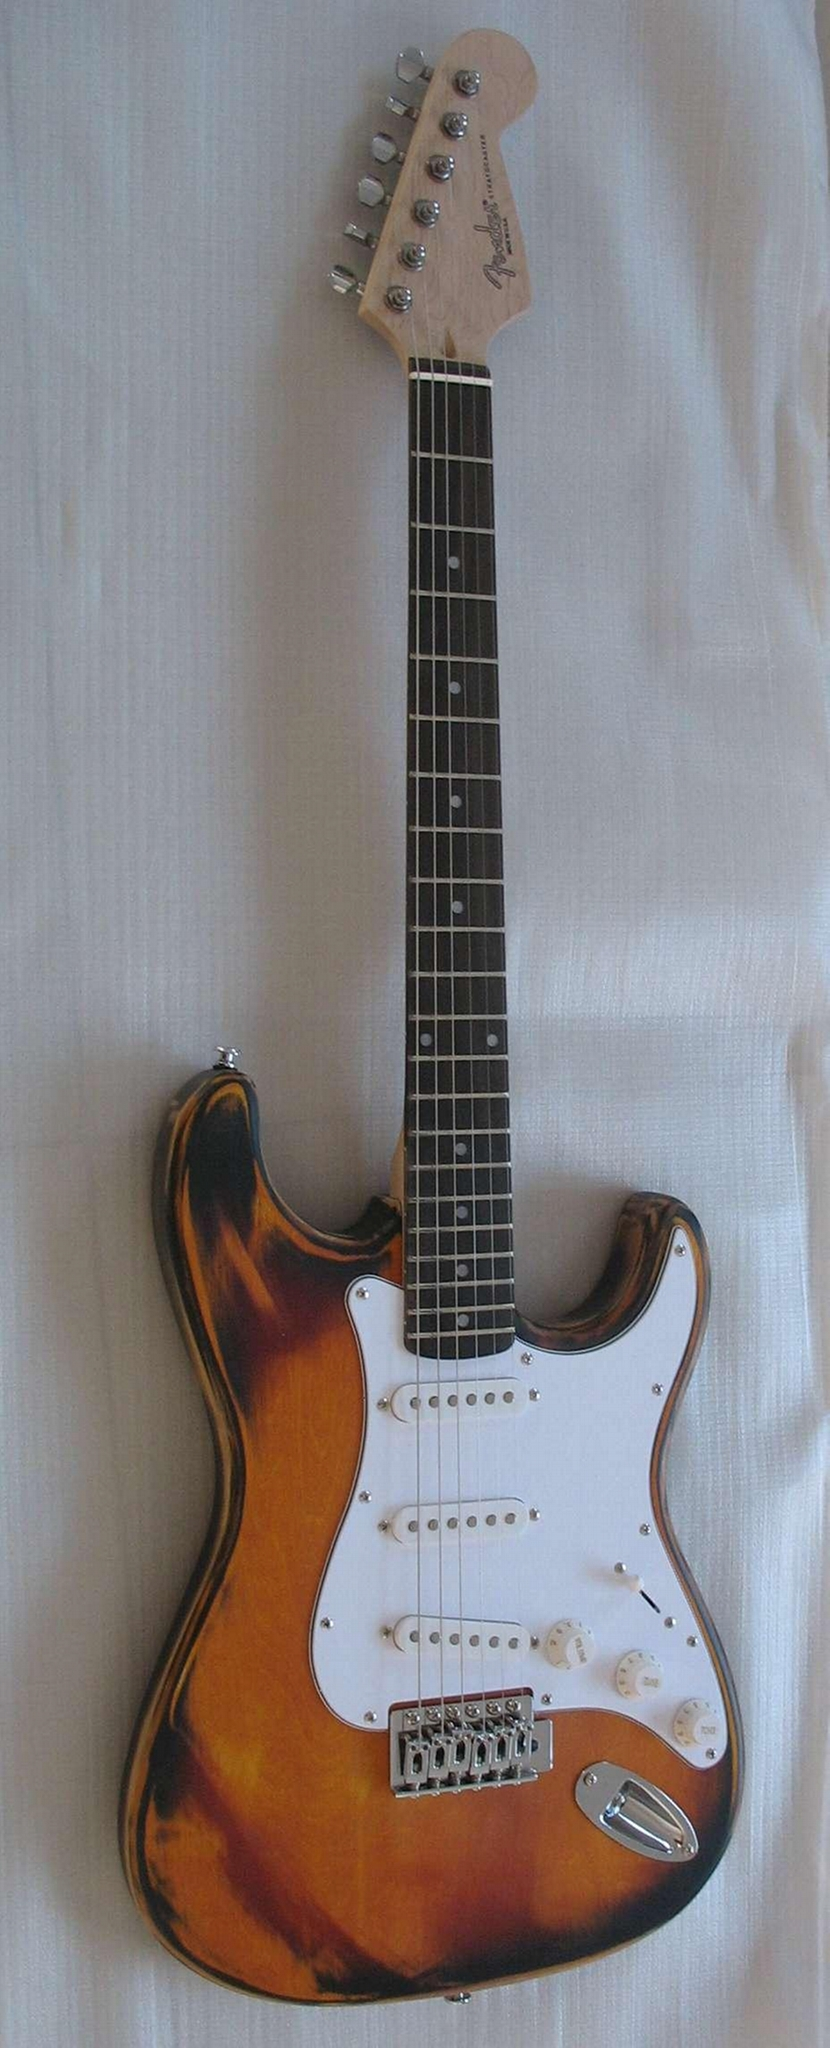 2020 Jingying Music ST Type Electric Guitars in All Colors 15